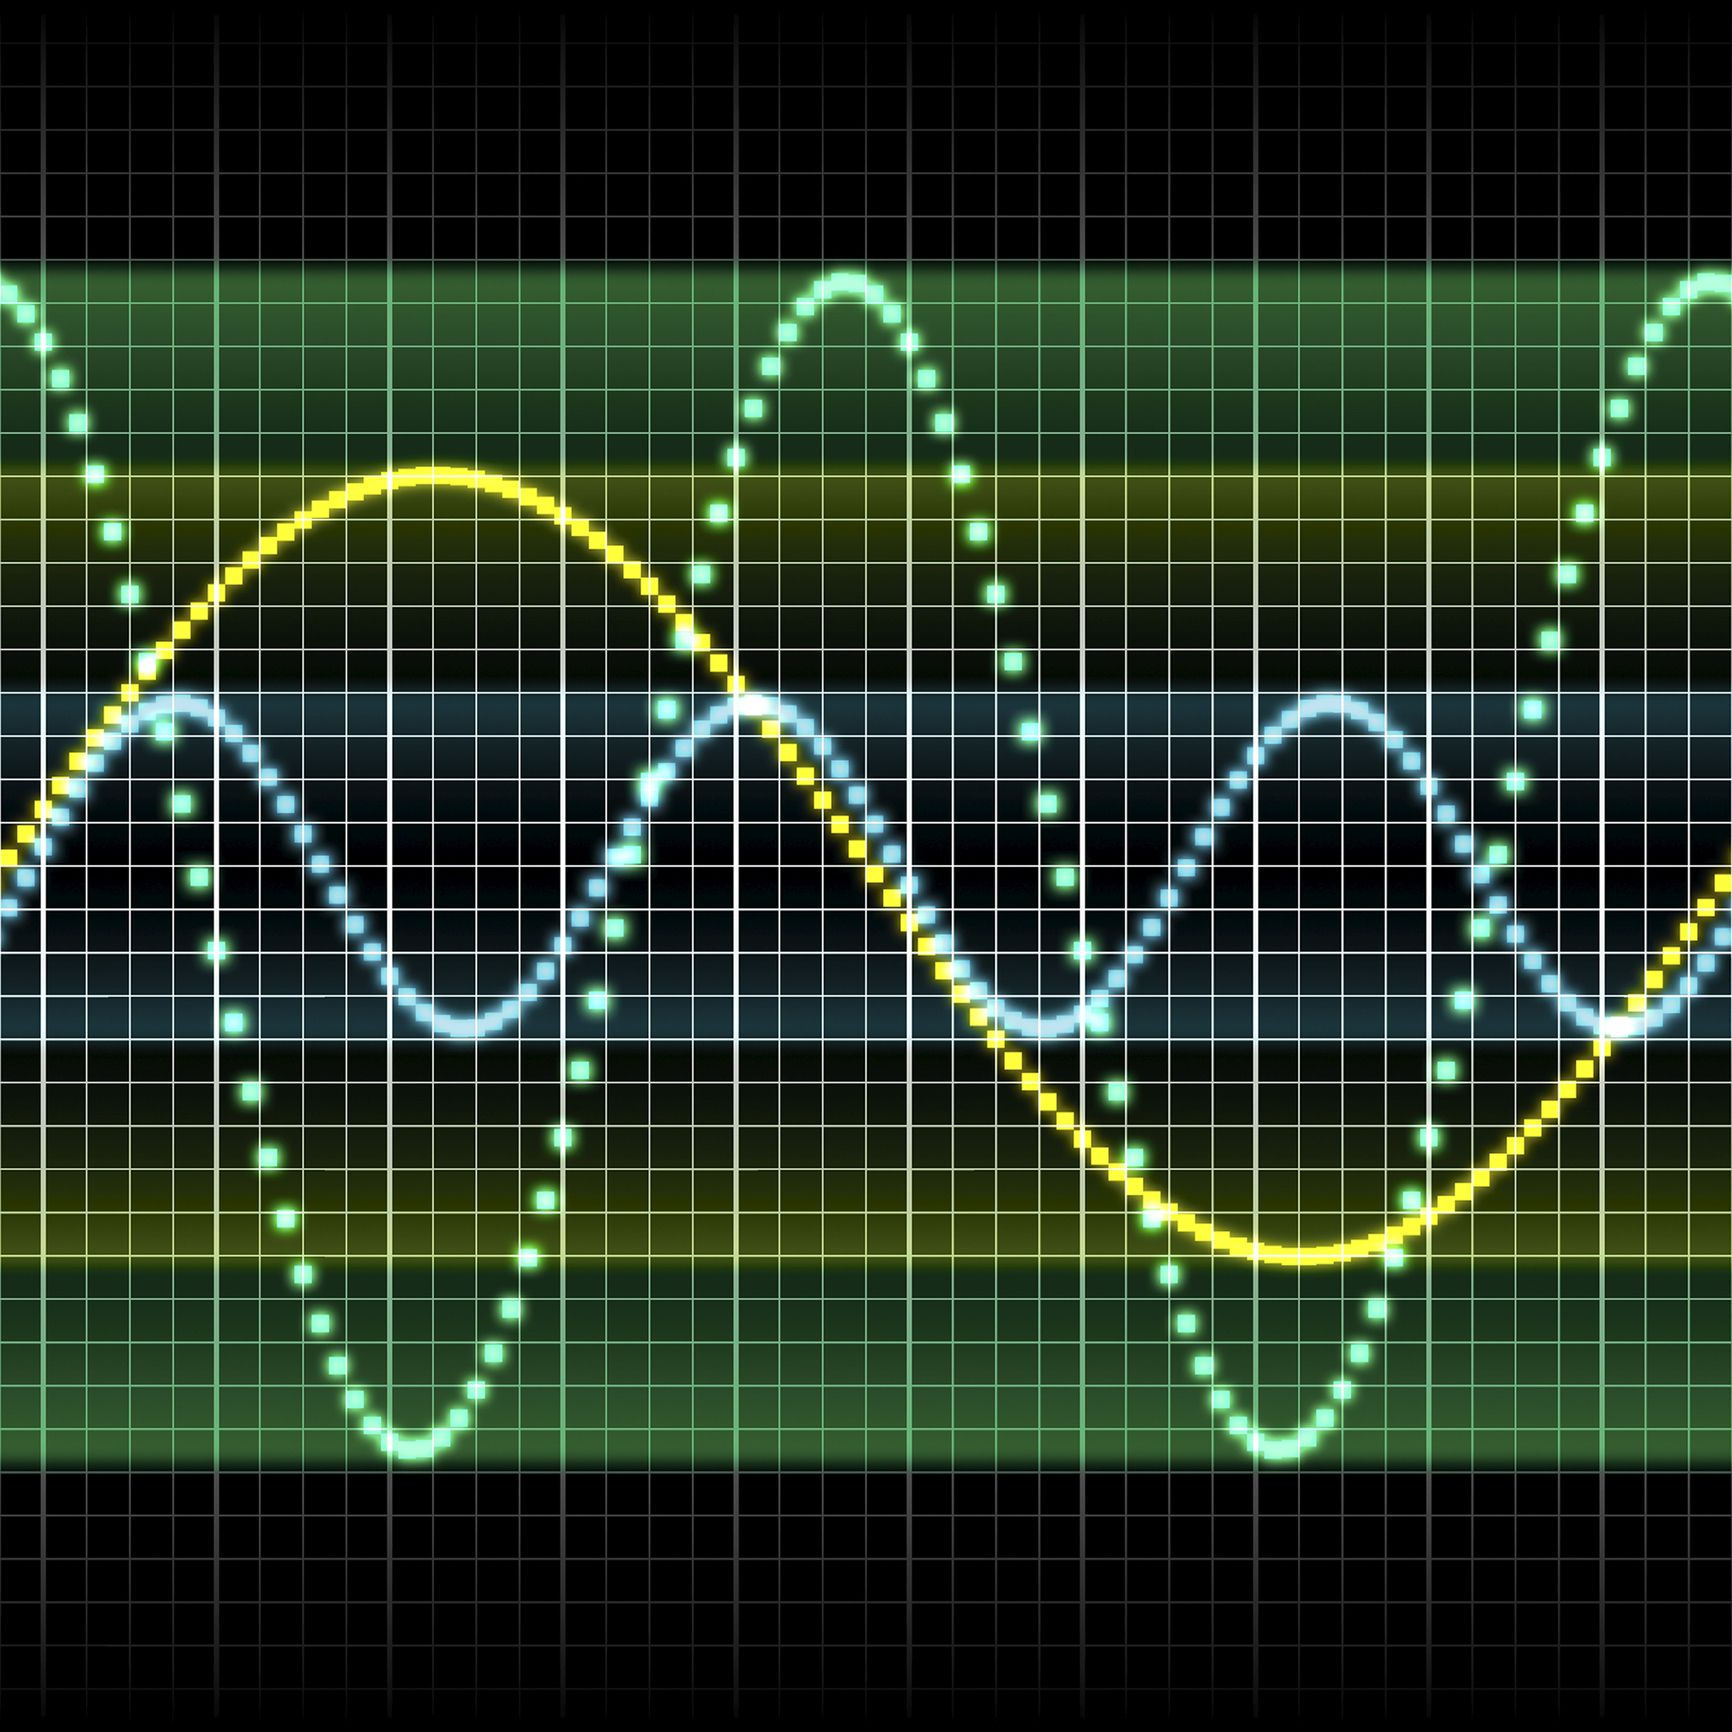 Mathematical Properties of Waves